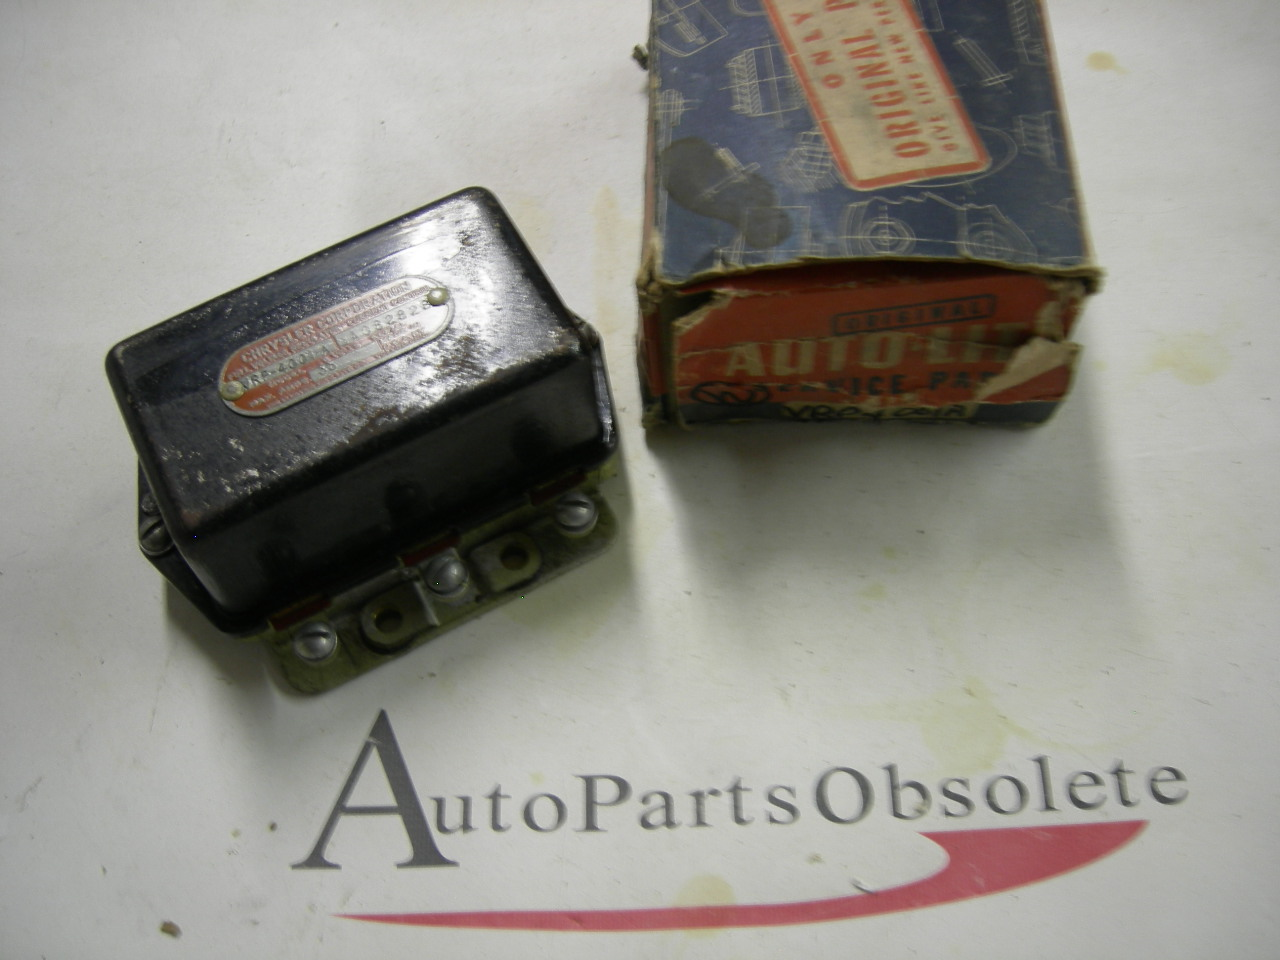 1940,1942,1946,1947 dodge truck voltage regulator nos # VRP 4001 A (a vrp-4001a)